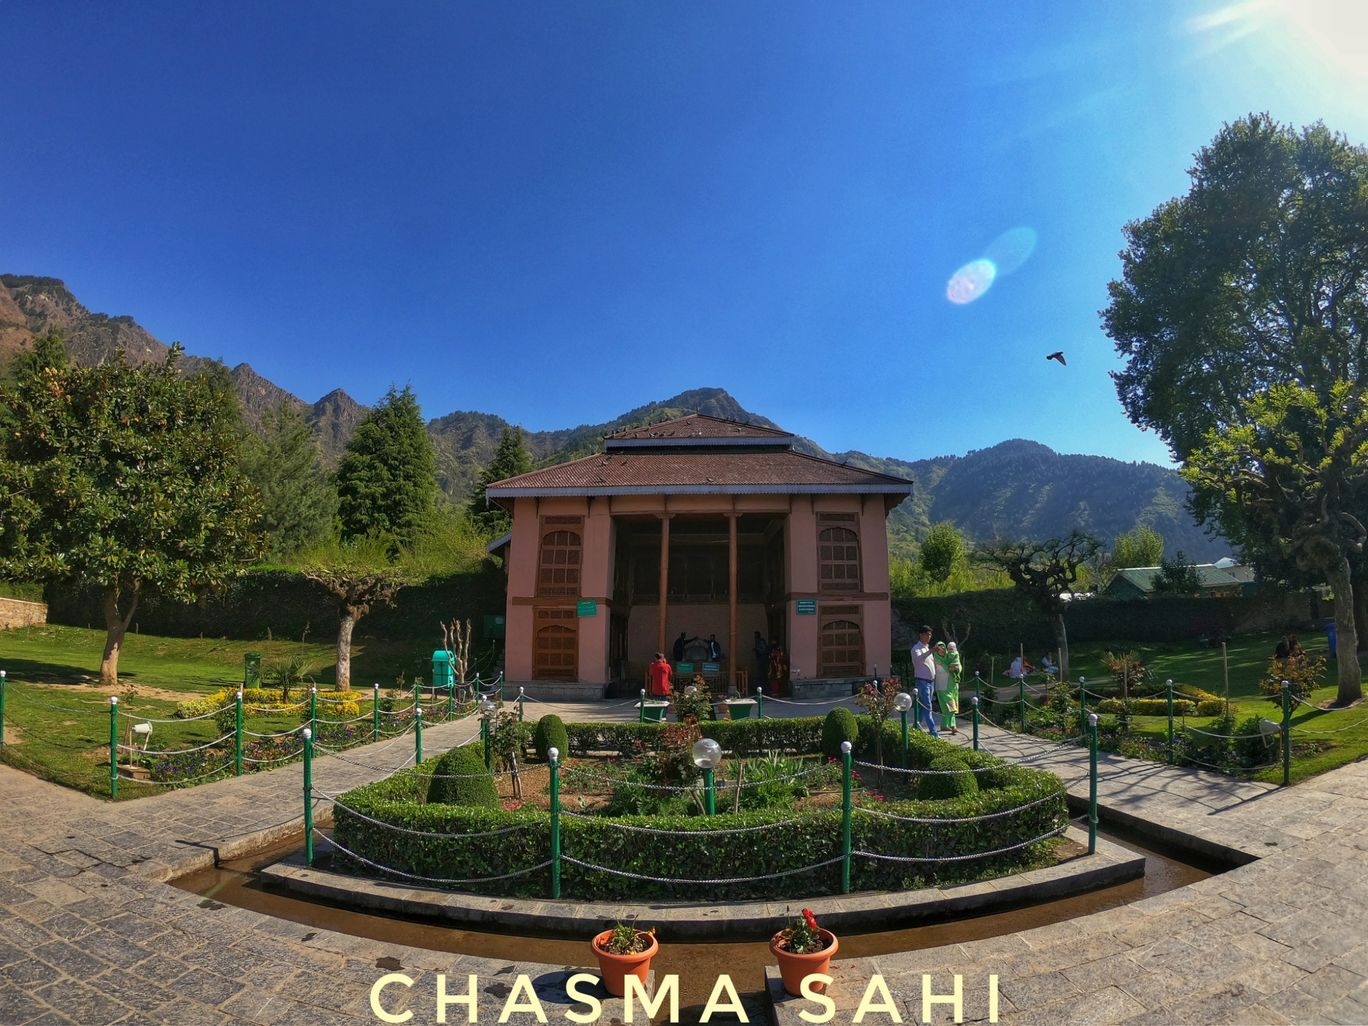 Photo of Chashma Shahi Garden By Indiangopro. traveller